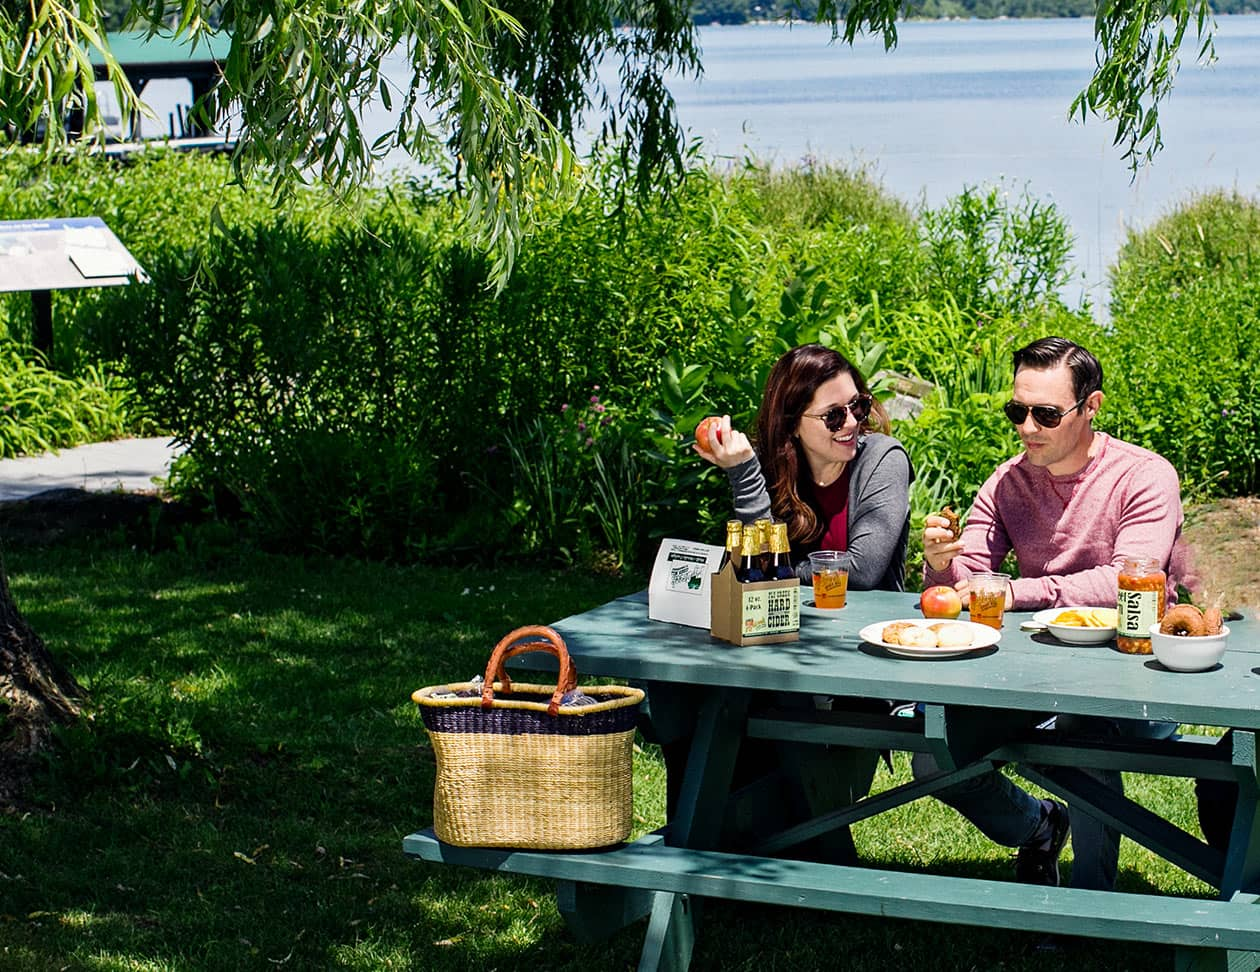 Picnic lunch for two in Cooperstown